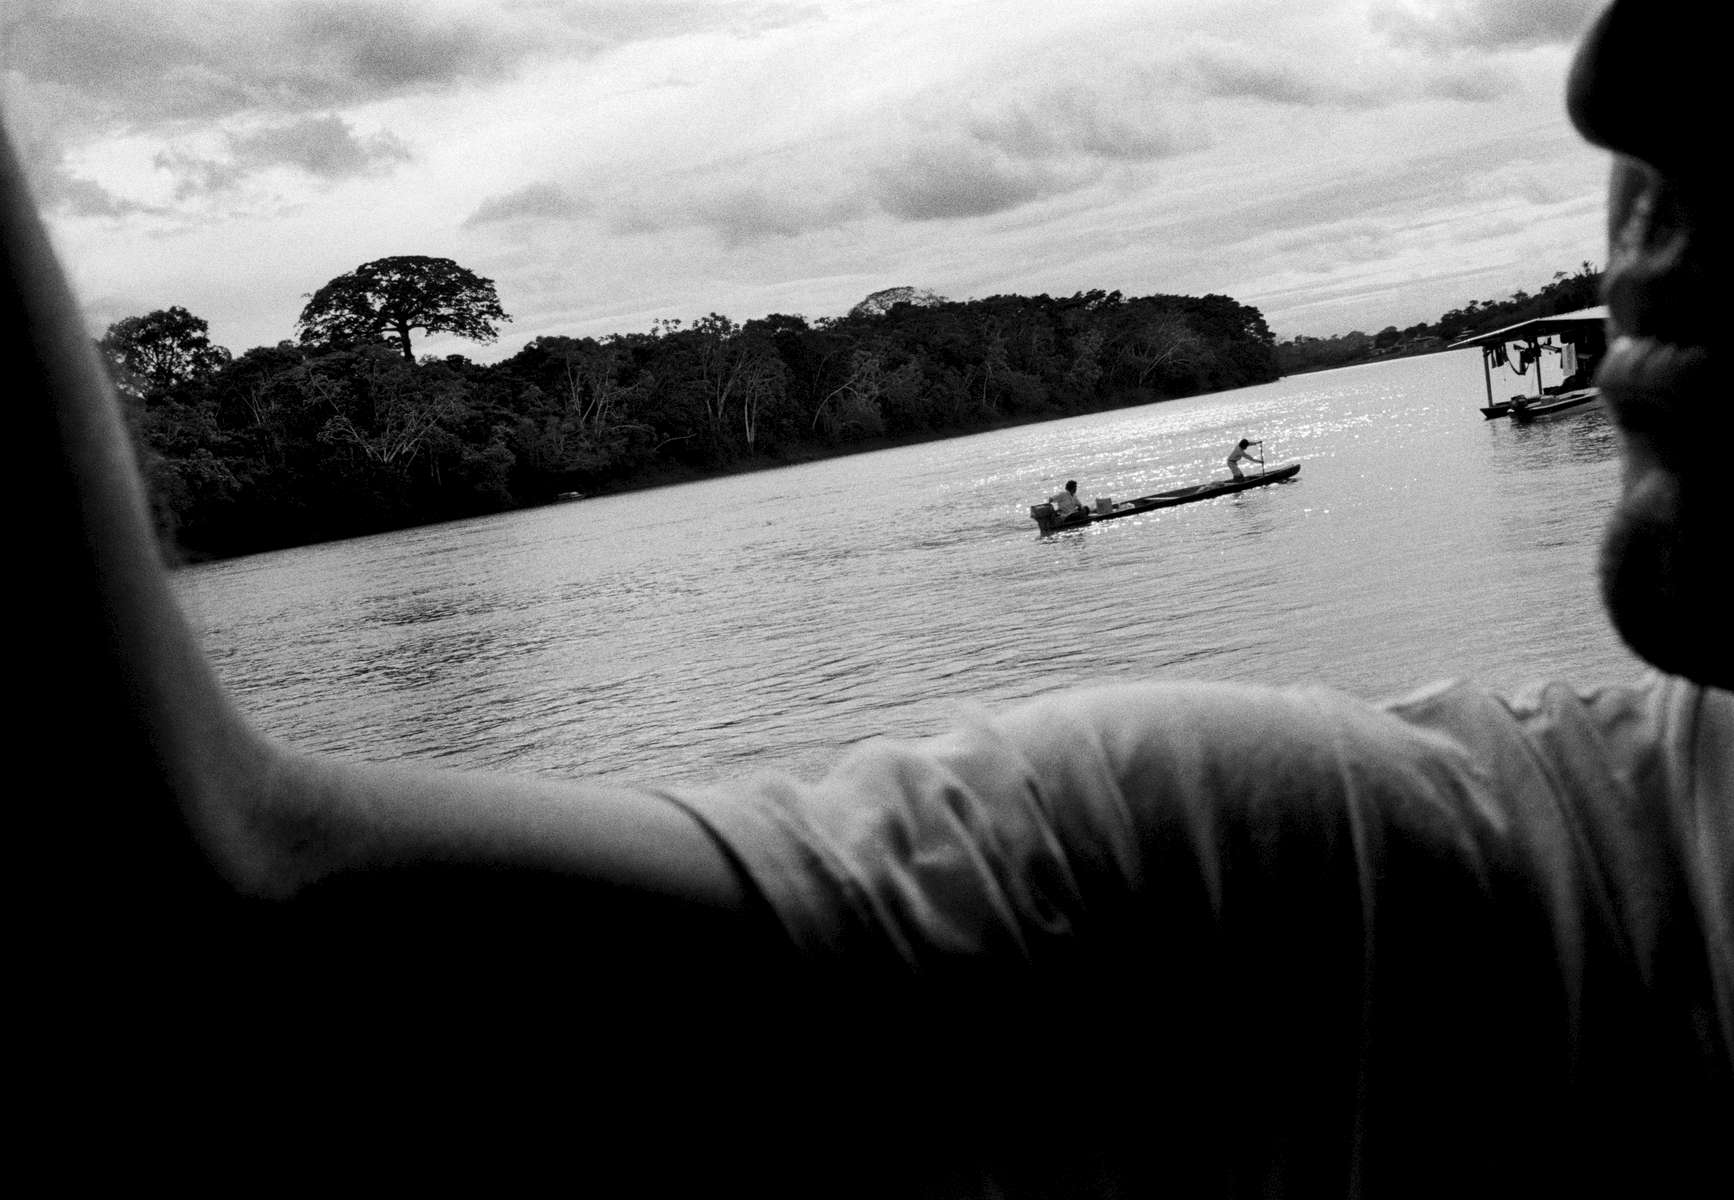 Rio Caguan, Southern Colombia 2000